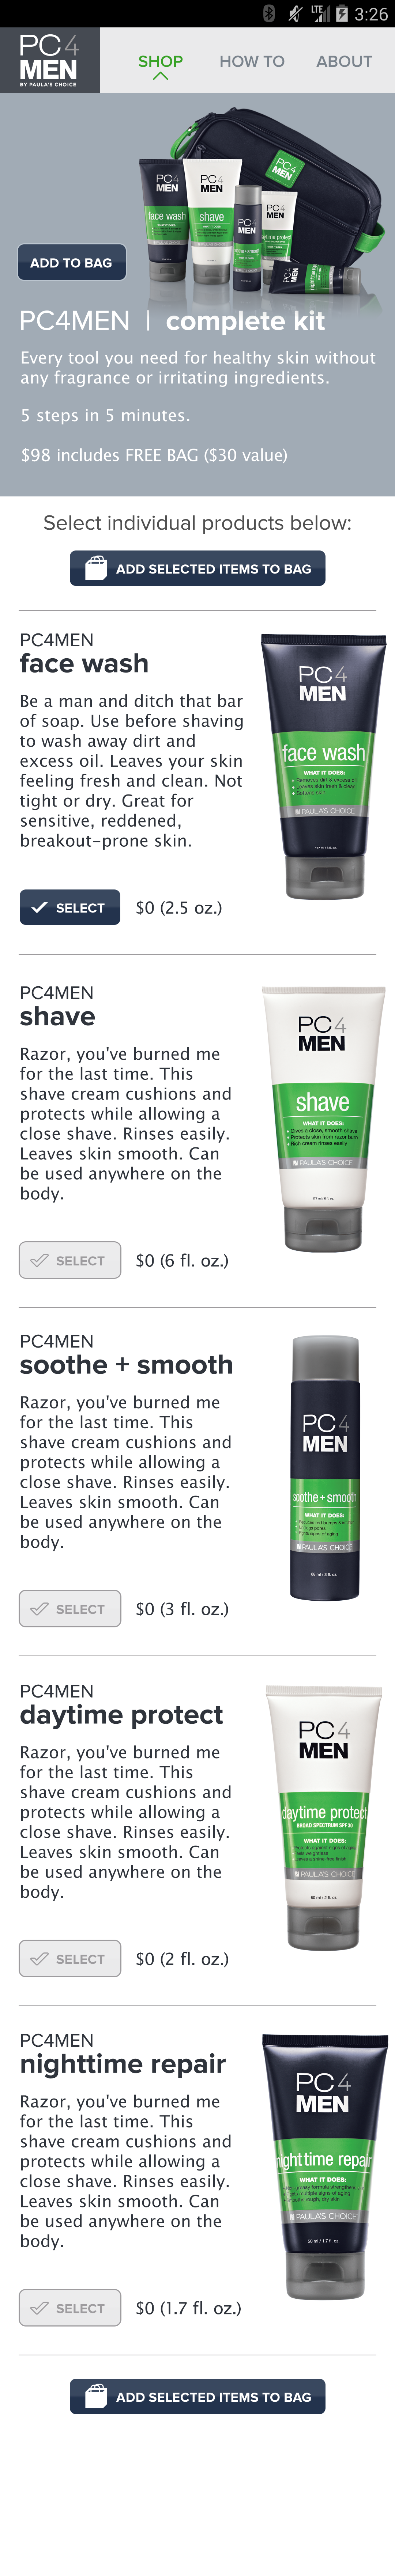 PC4Men Shop.png